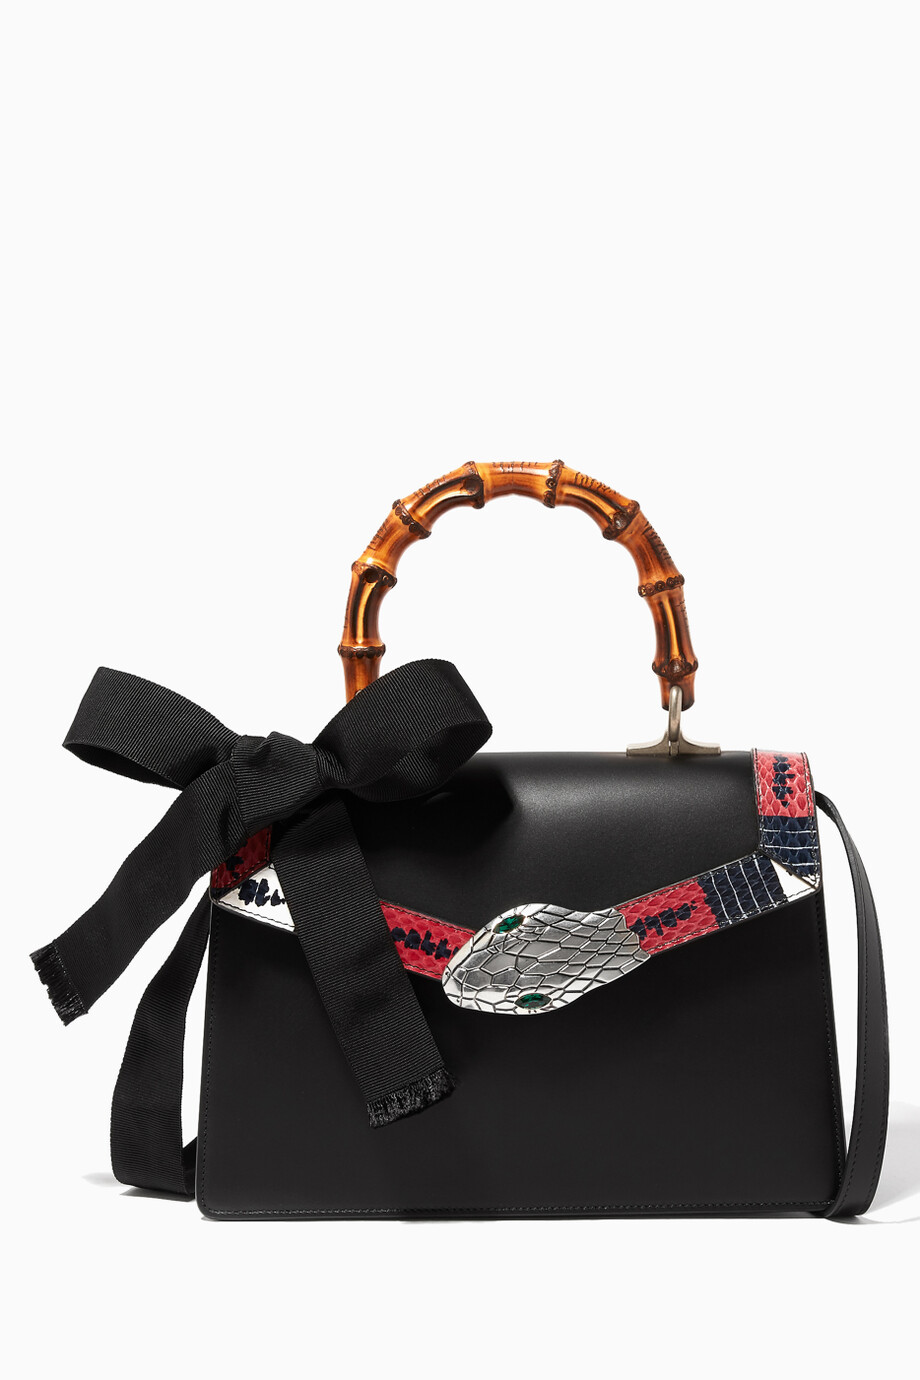 837974c6aa6 Shop Gucci Multicolour Black Lilith Leather Top Handle Bag for Women